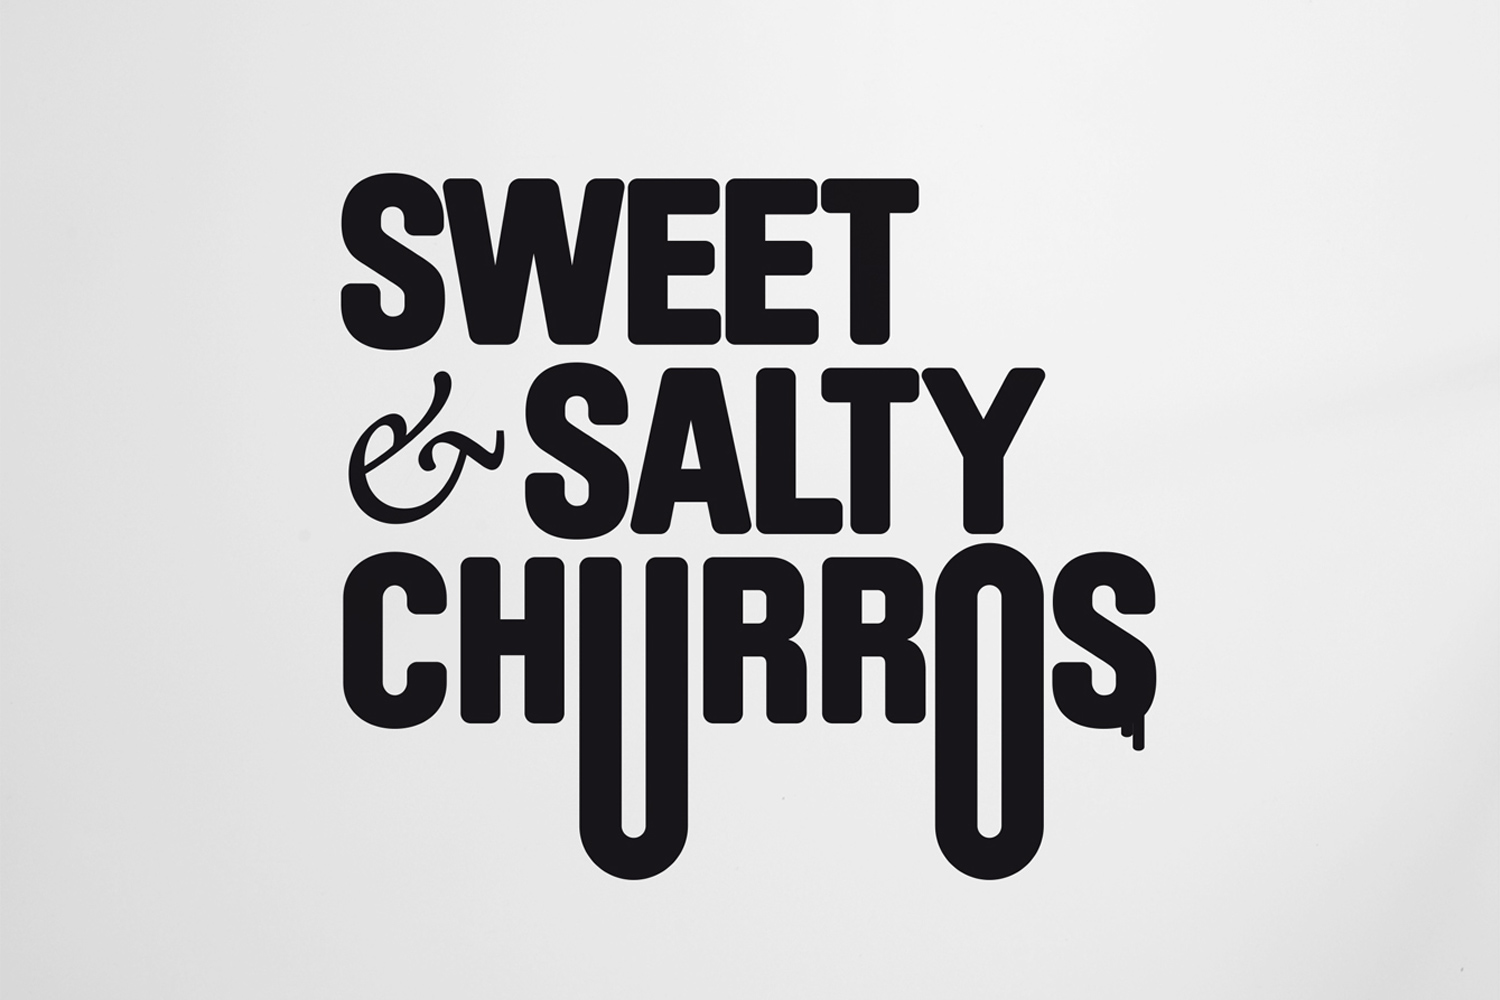 SWEET & SALTY CHURROS UP TO YOU STUDIO SERVICIOS PROFESIONALES HOSTELERIA & RESTAURACION DISEÑO GRAFICO BRANDING